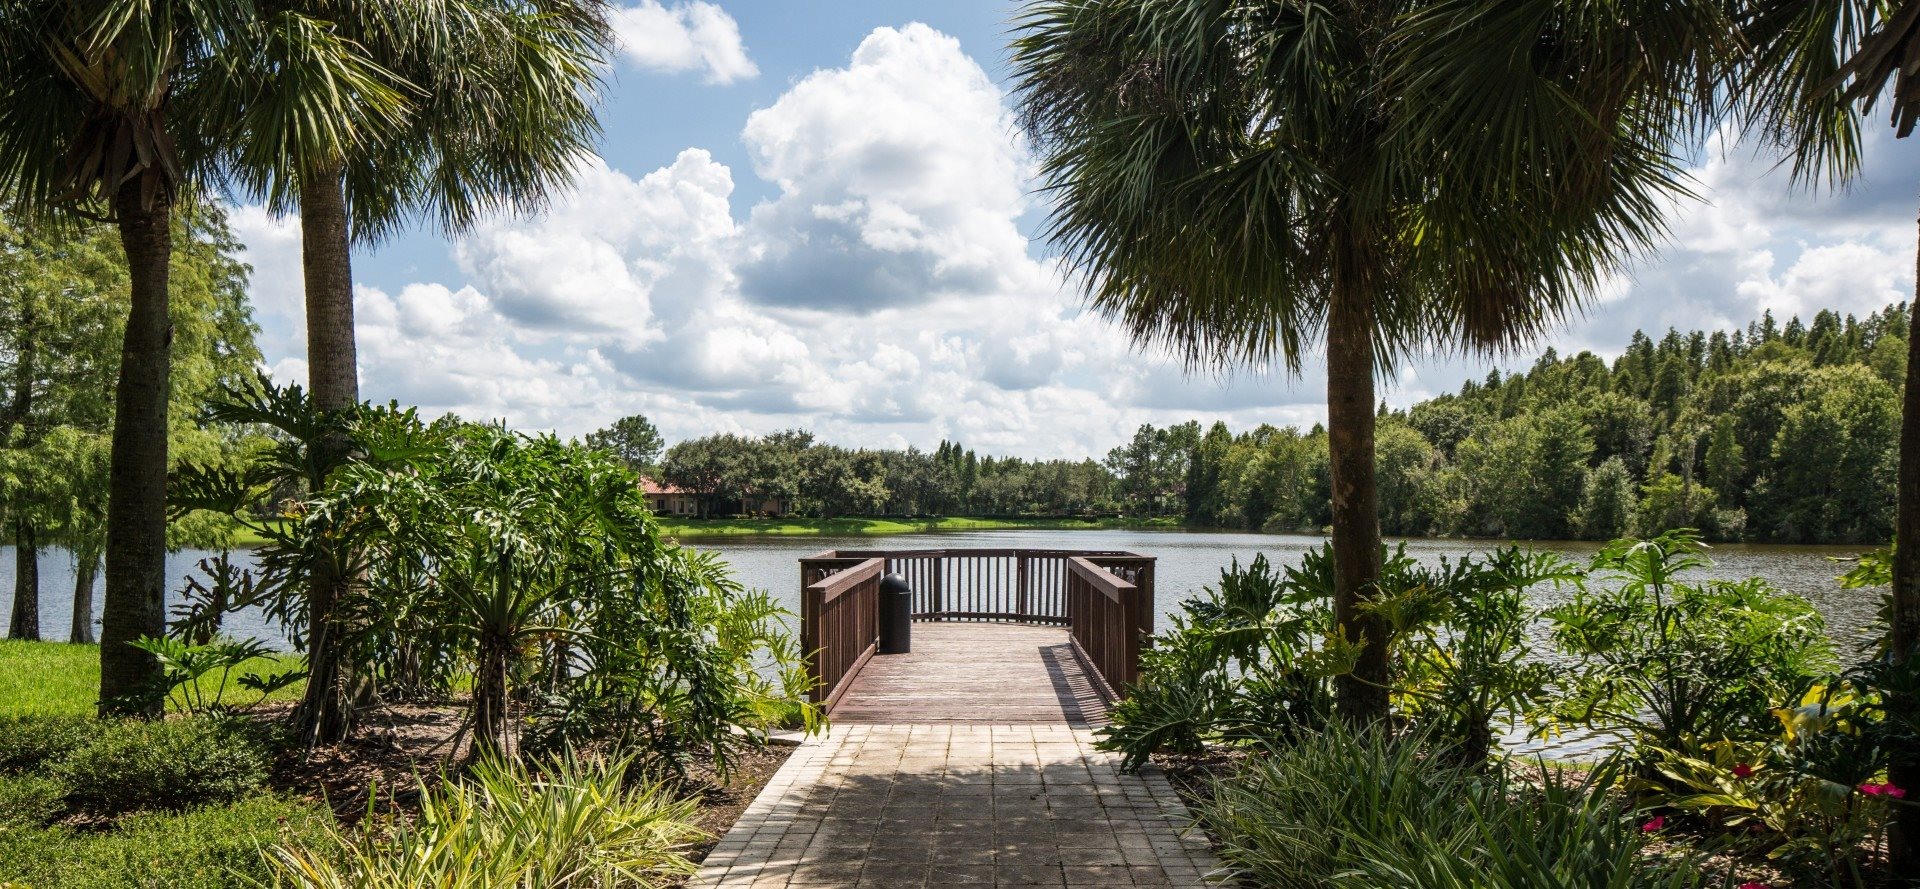 Walkway to dock overlooking water surrounded by palm trees